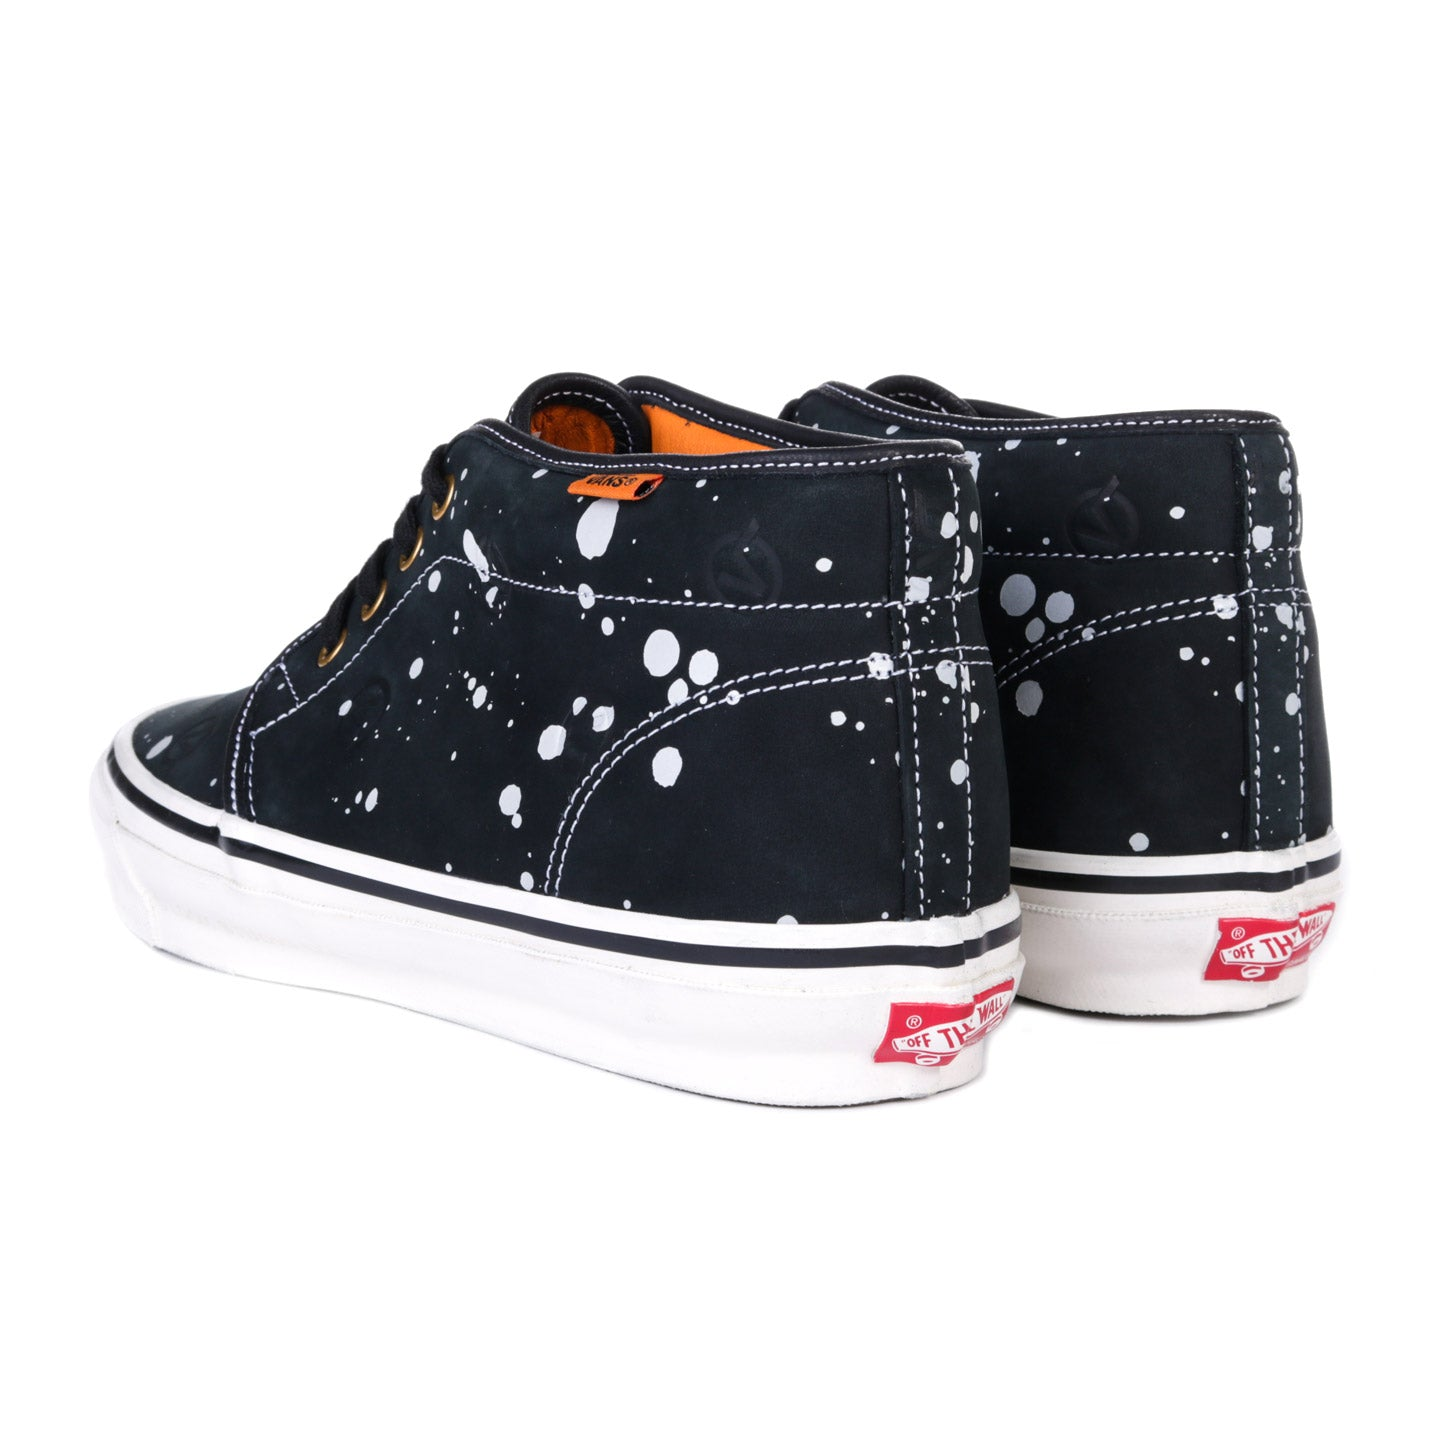 VAULT BY VANS LQQK STUDIO OG CHUKKA BOOT LX SPLATTER BLACK